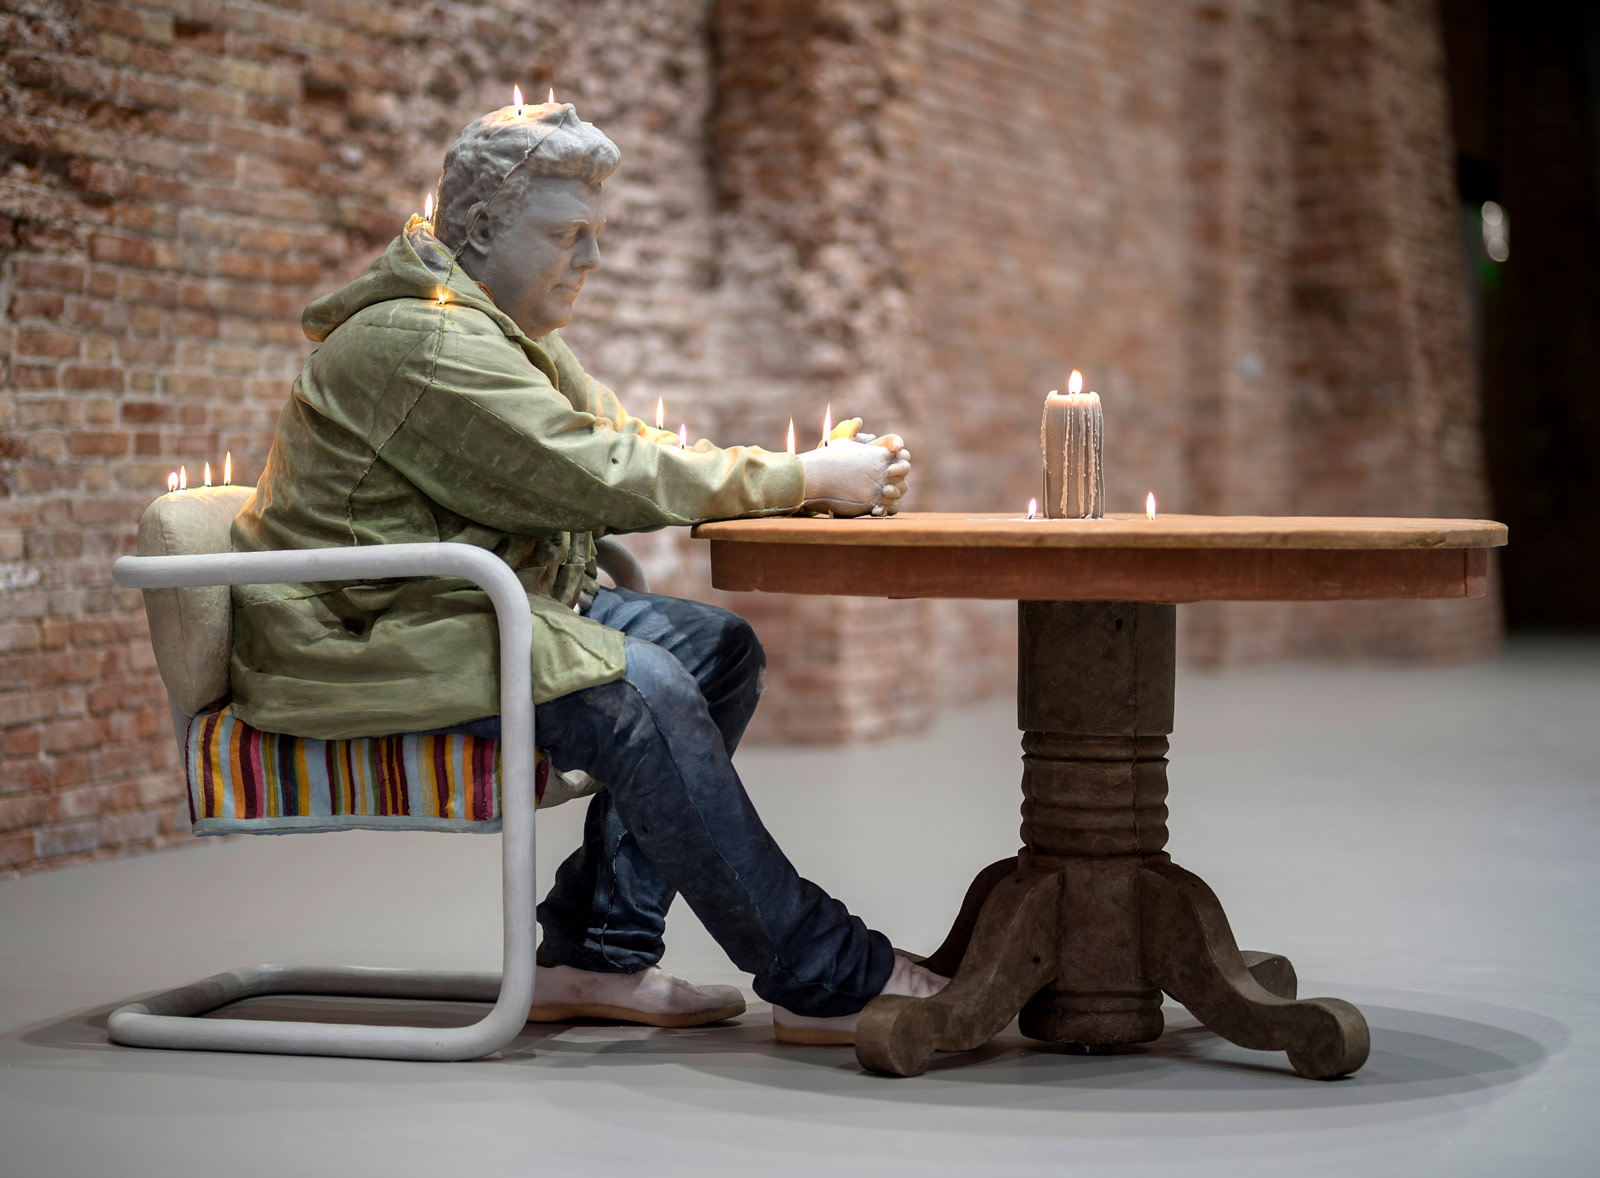 <p>Installation view, group exhibition <em>Dancing with Myself,</em> Palazzo Grassi Punta della Dogana, 08 April - 06 December 2018</p>